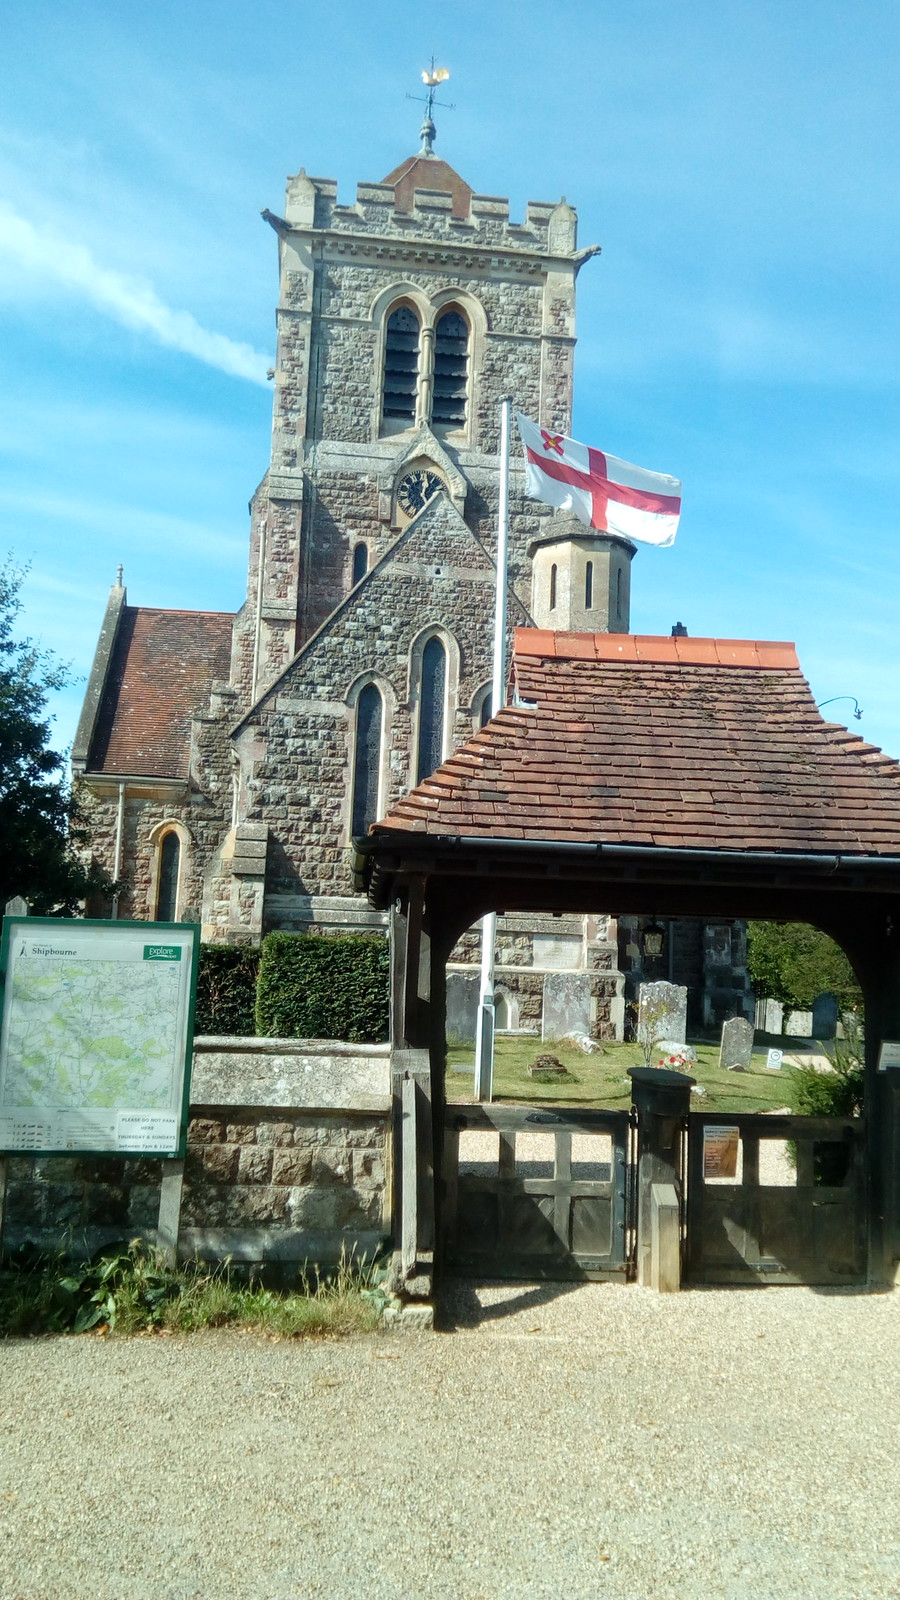 St. Giles at Shipbourne